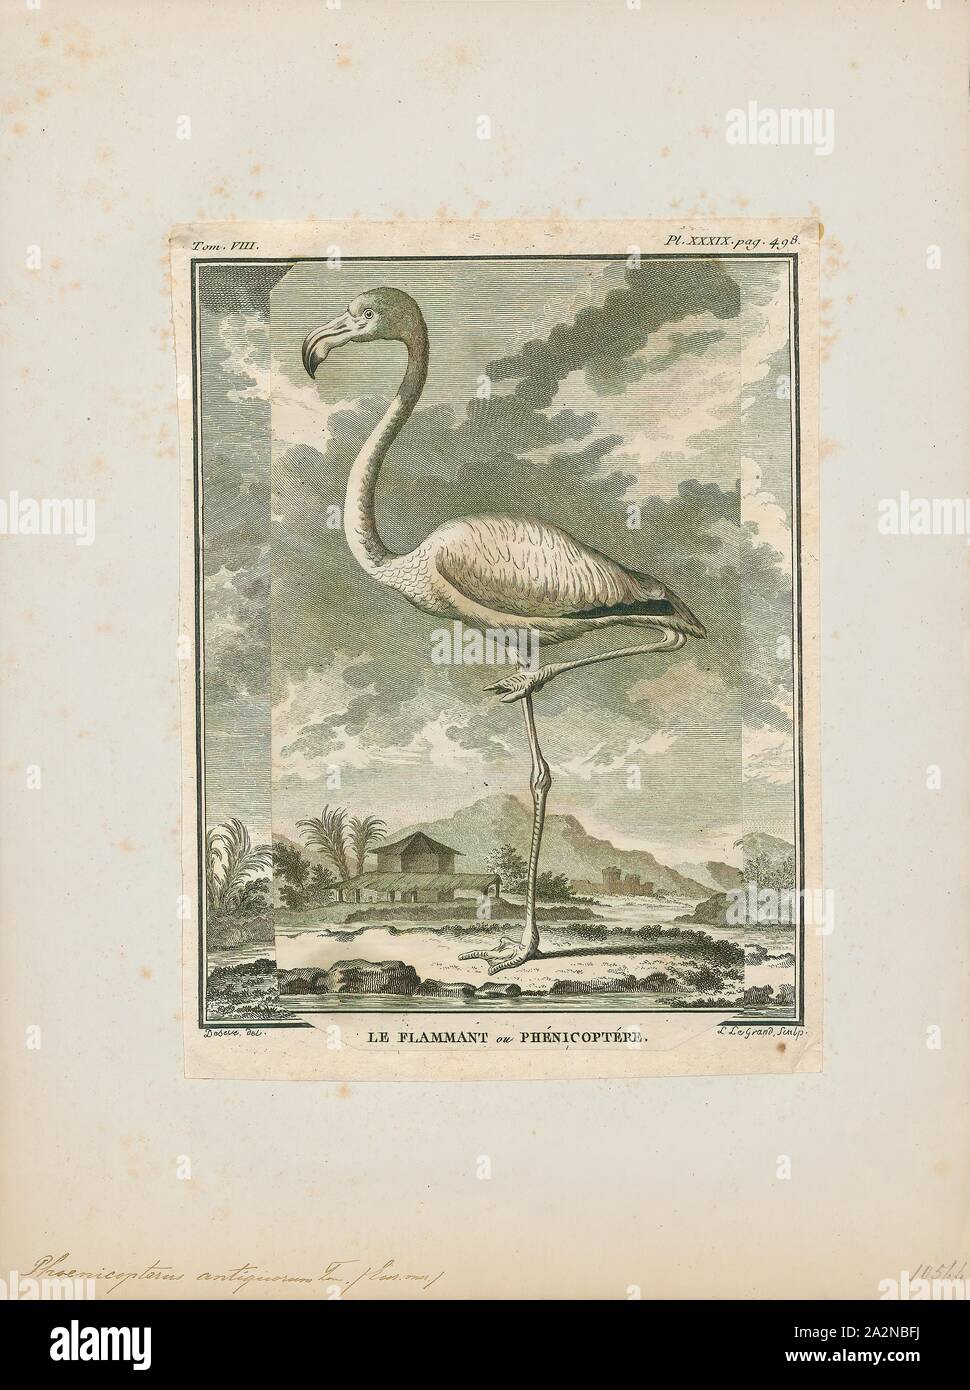 Phoenicopterus antiquorum, Print, The greater flamingo (Phoenicopterus roseus) is the most widespread and largest species of the flamingo family. It is found in Africa, on the Indian subcontinent, in the Middle East, and in southern Europe., 1700-1880 Stock Photo